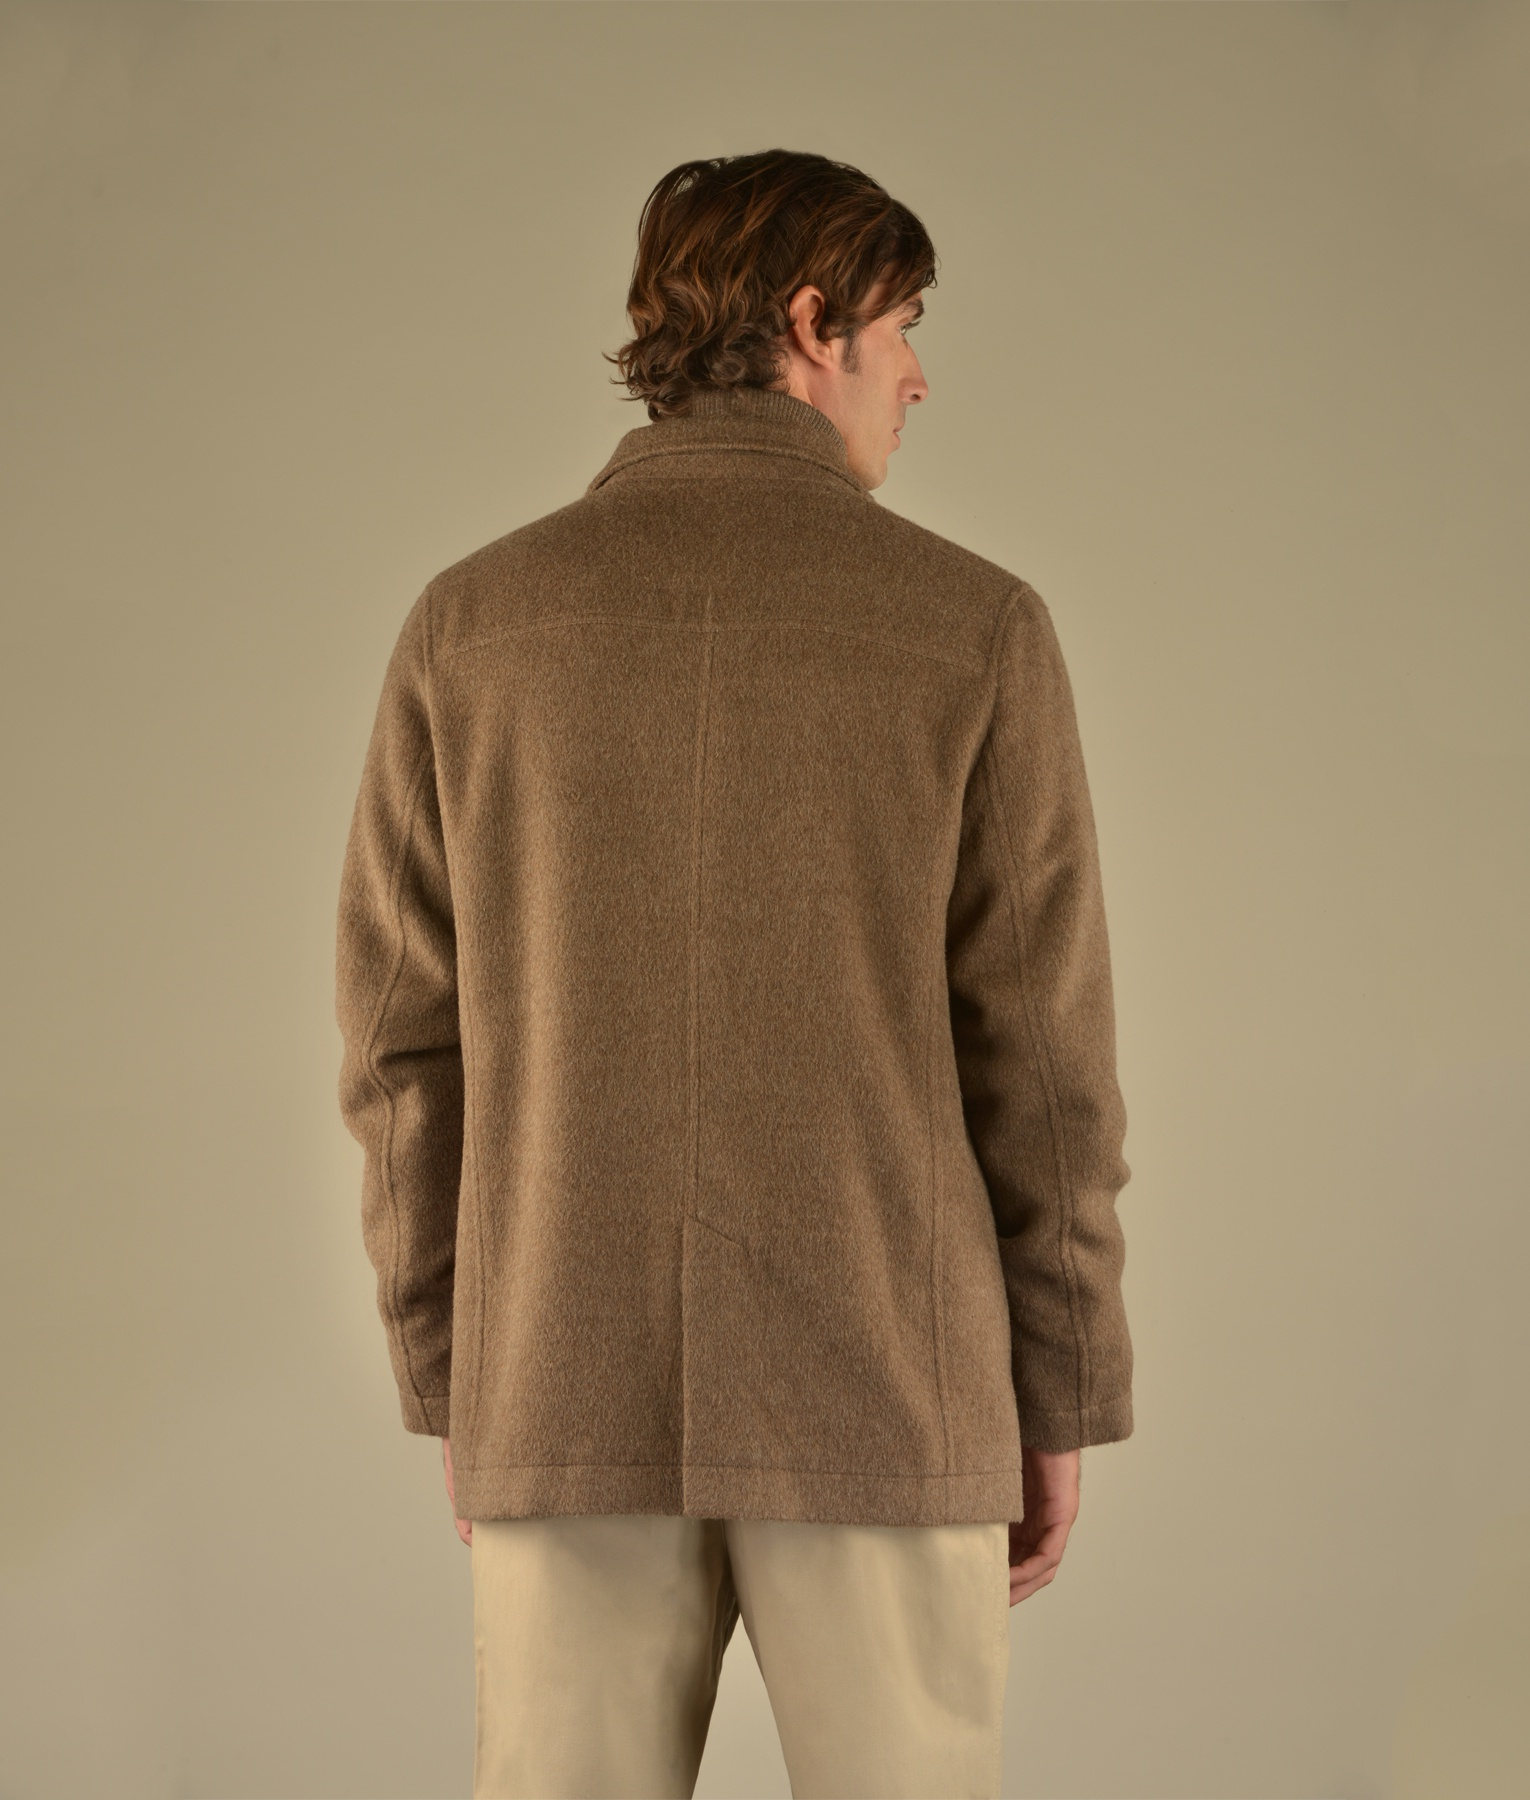 MEN'S TWO LAYERED JACKET 211